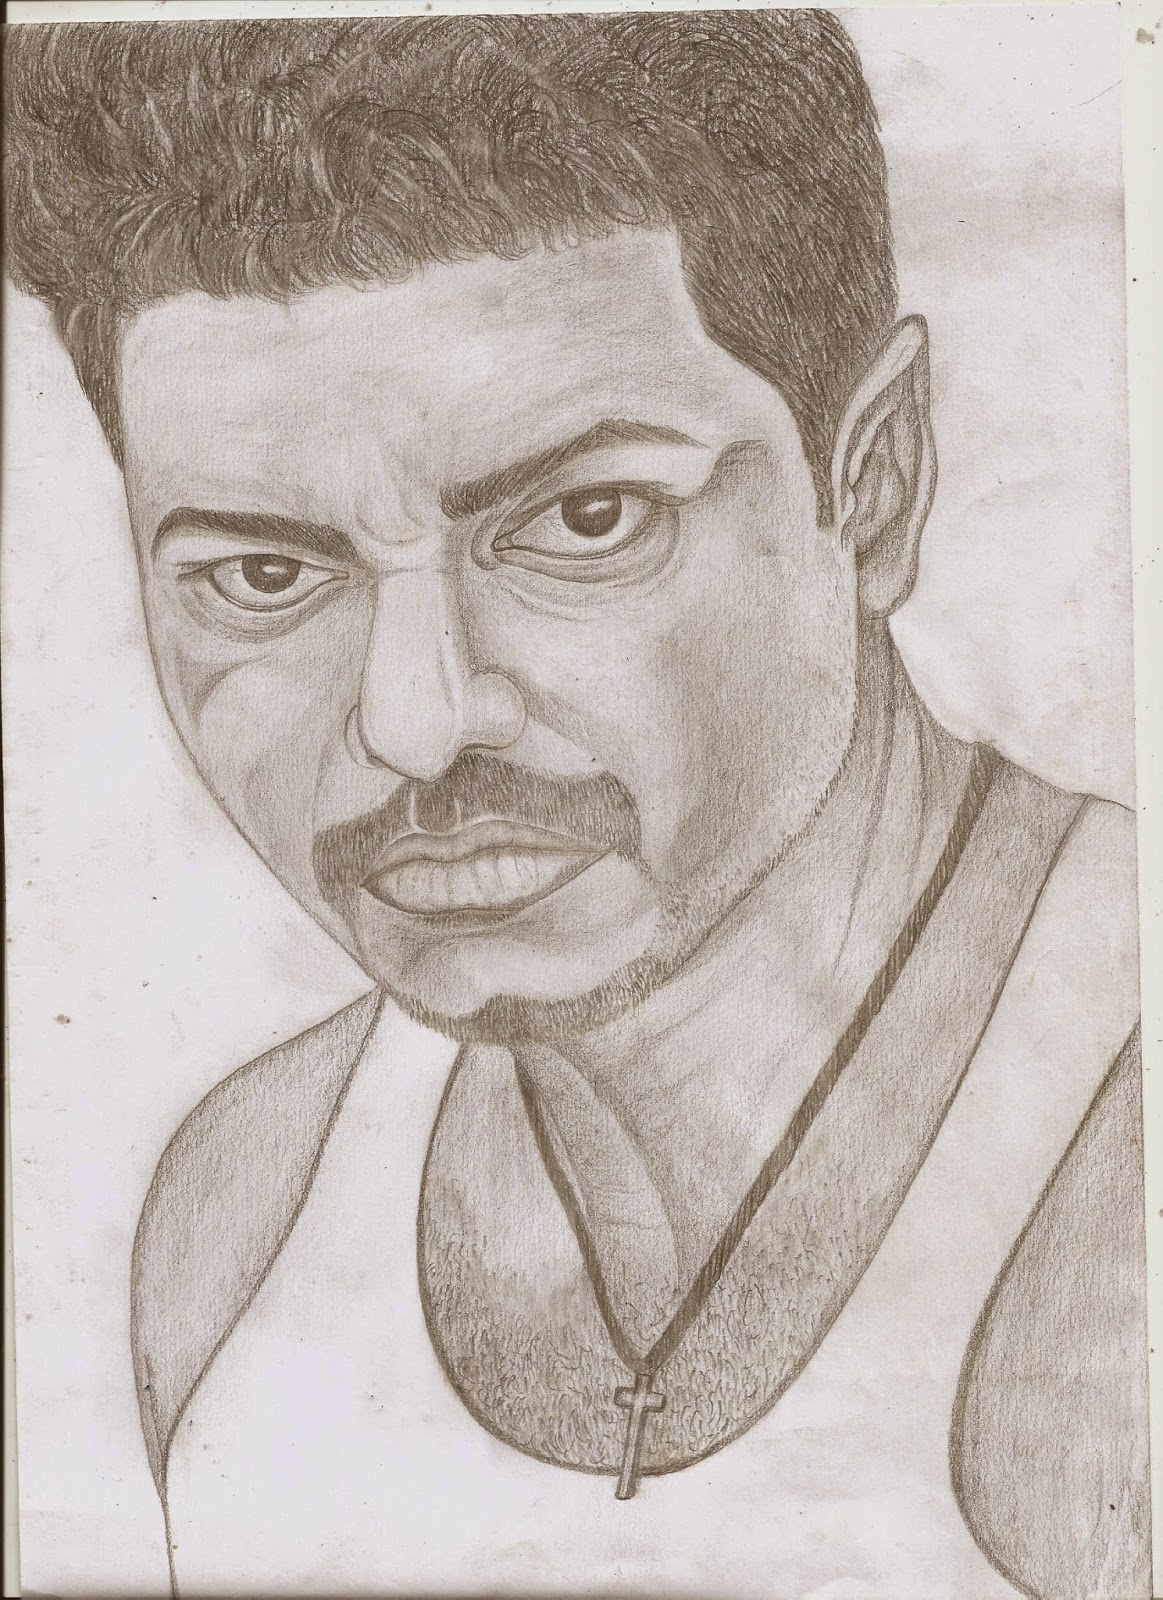 Jackhi pencil drawing vijay pencil sketch